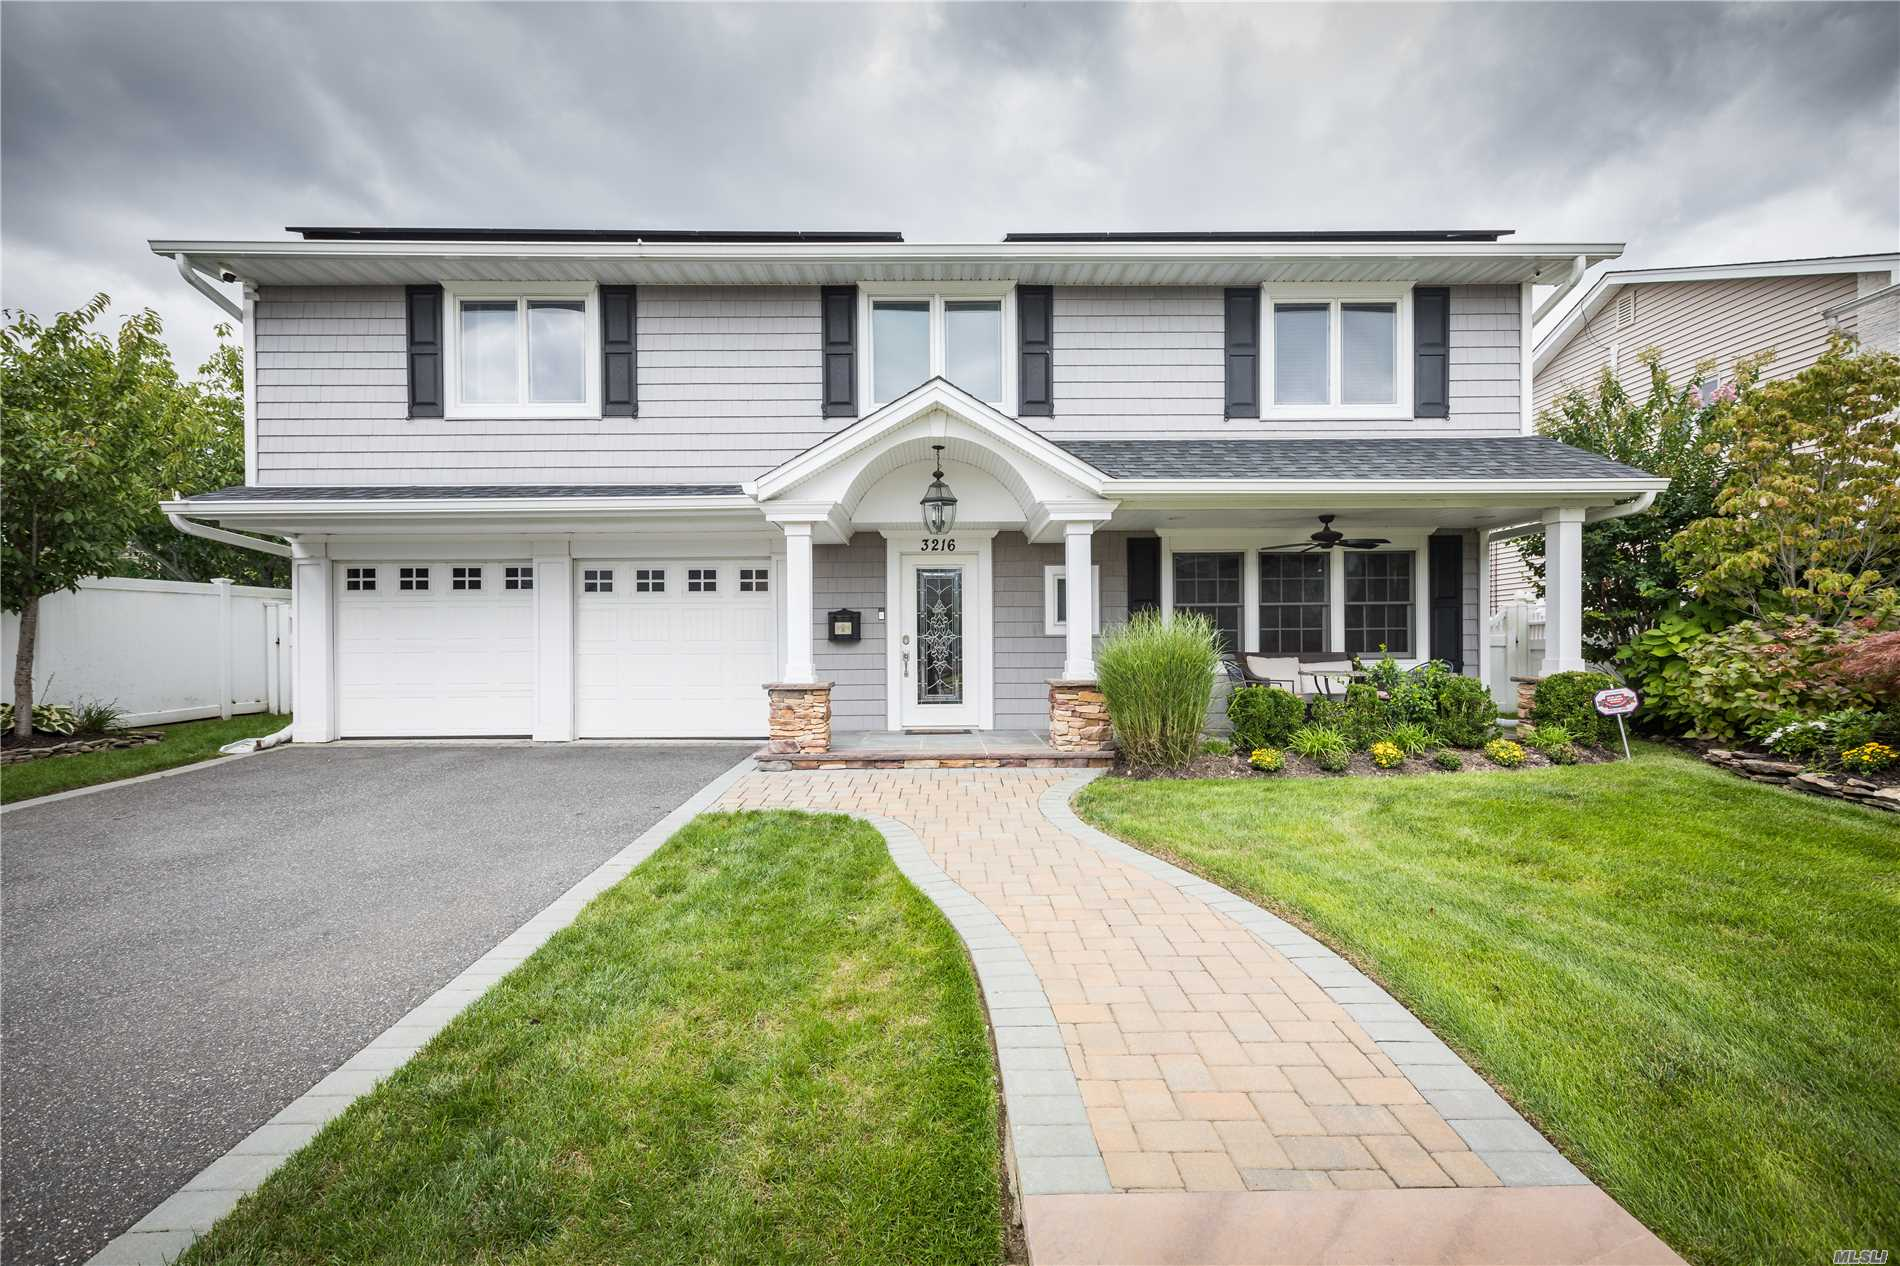 East Bay Large Splanch, Chefs Eat In Kitchen, 6 Burner Gas Stove With Griddle And Double Oven, Huge Center Island,  All Newly Redone Siding, Roof, Garage Doors, Front Door,  Cac, Solar Panels(Approx $12 A Month Electric Bill) State Of The Art Alarm And Camera System, Remote Access, Home Automation For Door Locks, Lights, And Thermostats, Ring Doorbell Hardwired,  Huge Master Walk In Closet, Gas Fireplace. Large Bedrooms, All Bedroom Closets Organized. *Tax Grievance In Effect See Attachment*